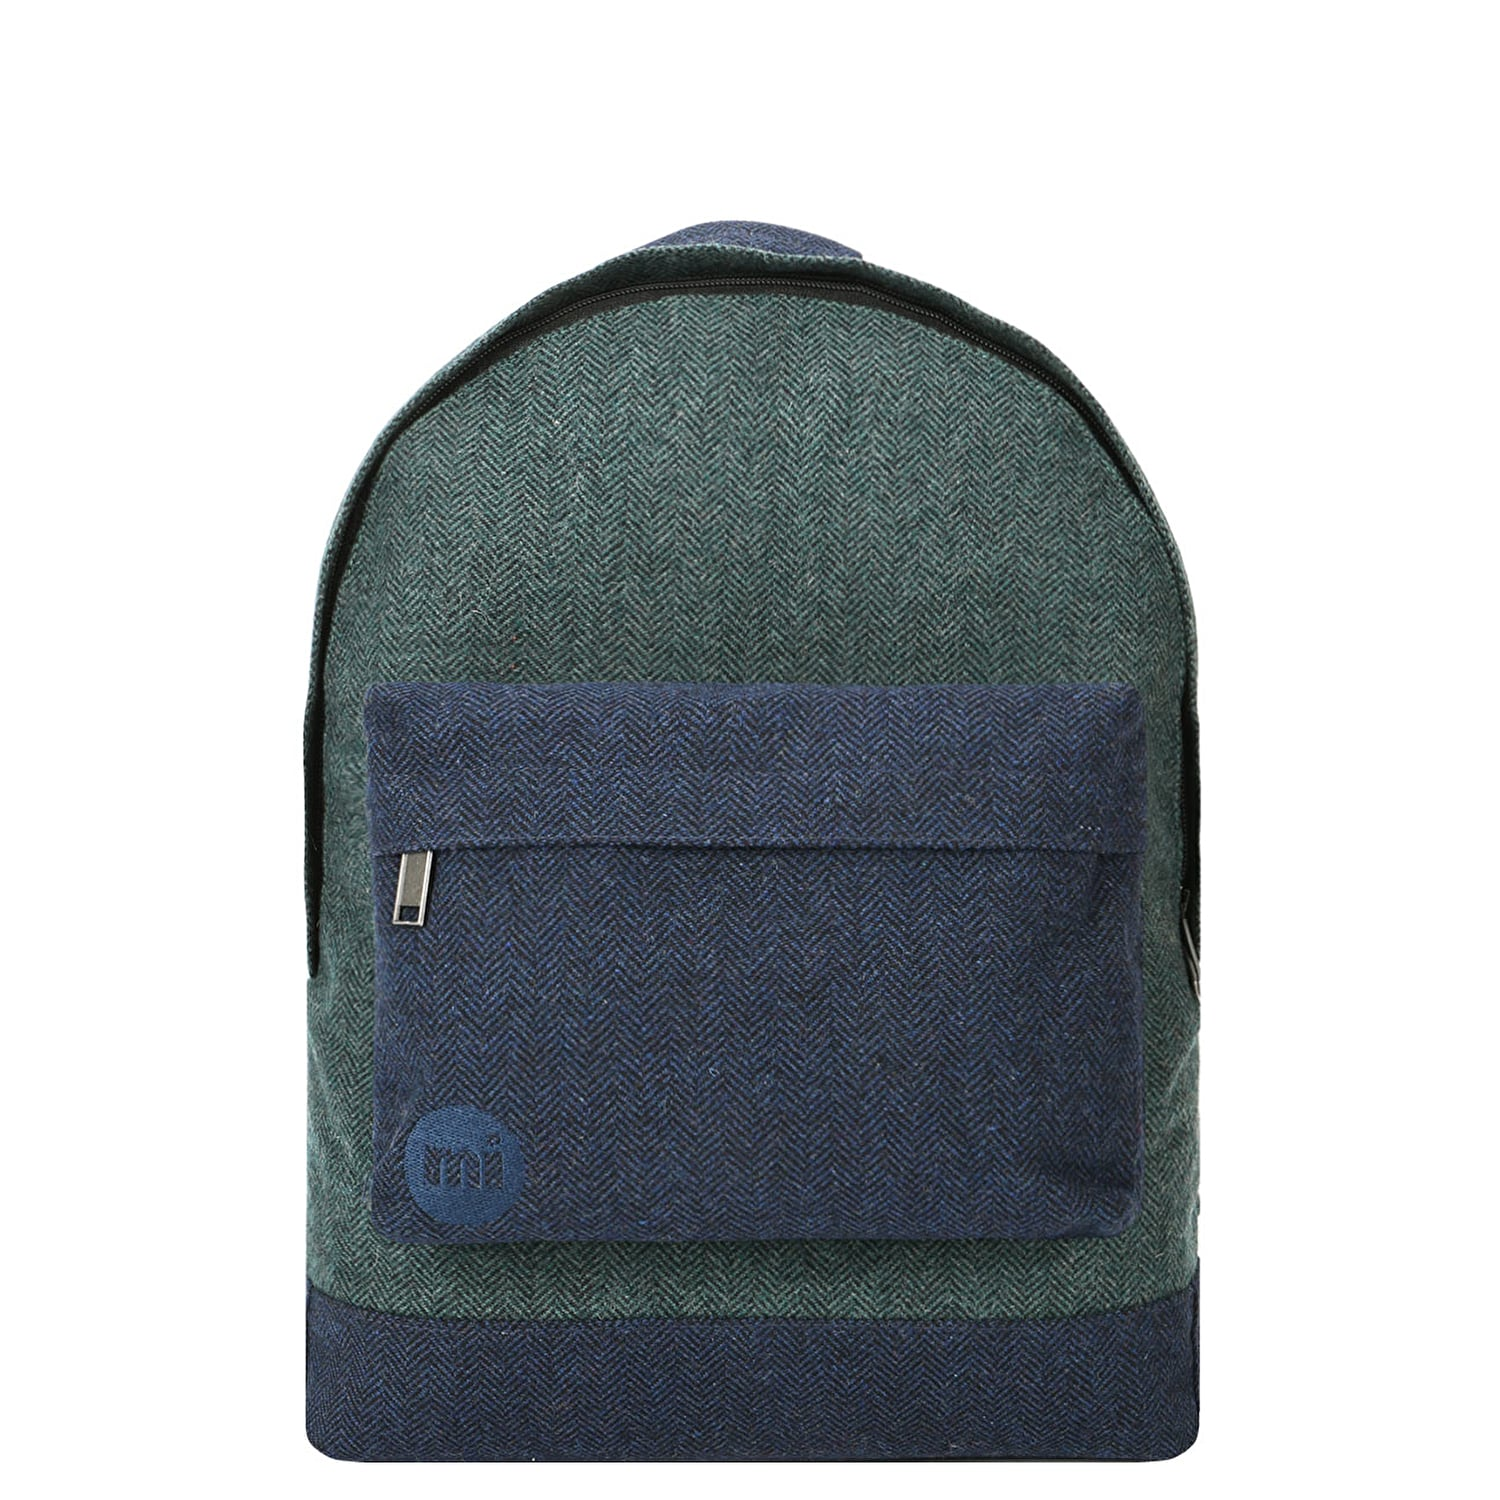 Mi-Pac Herringbone Mix Backpack - Green/Navy (One Size Only)